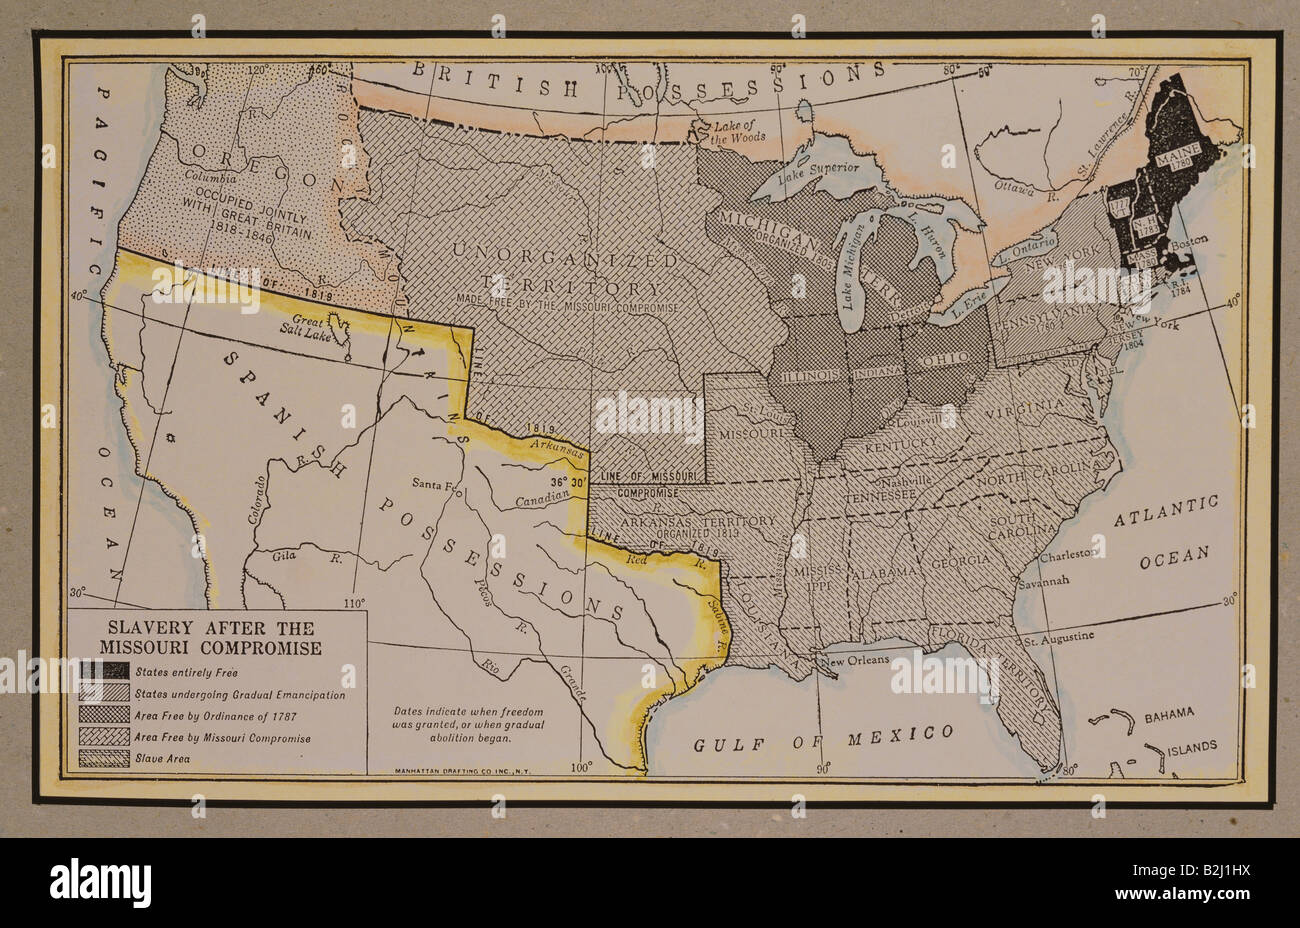 cartography  map  North America  USA  spreading of slavery after     cartography  map  North America  USA  spreading of slavery after Missouri  compromise  1820   map from  America  its People and